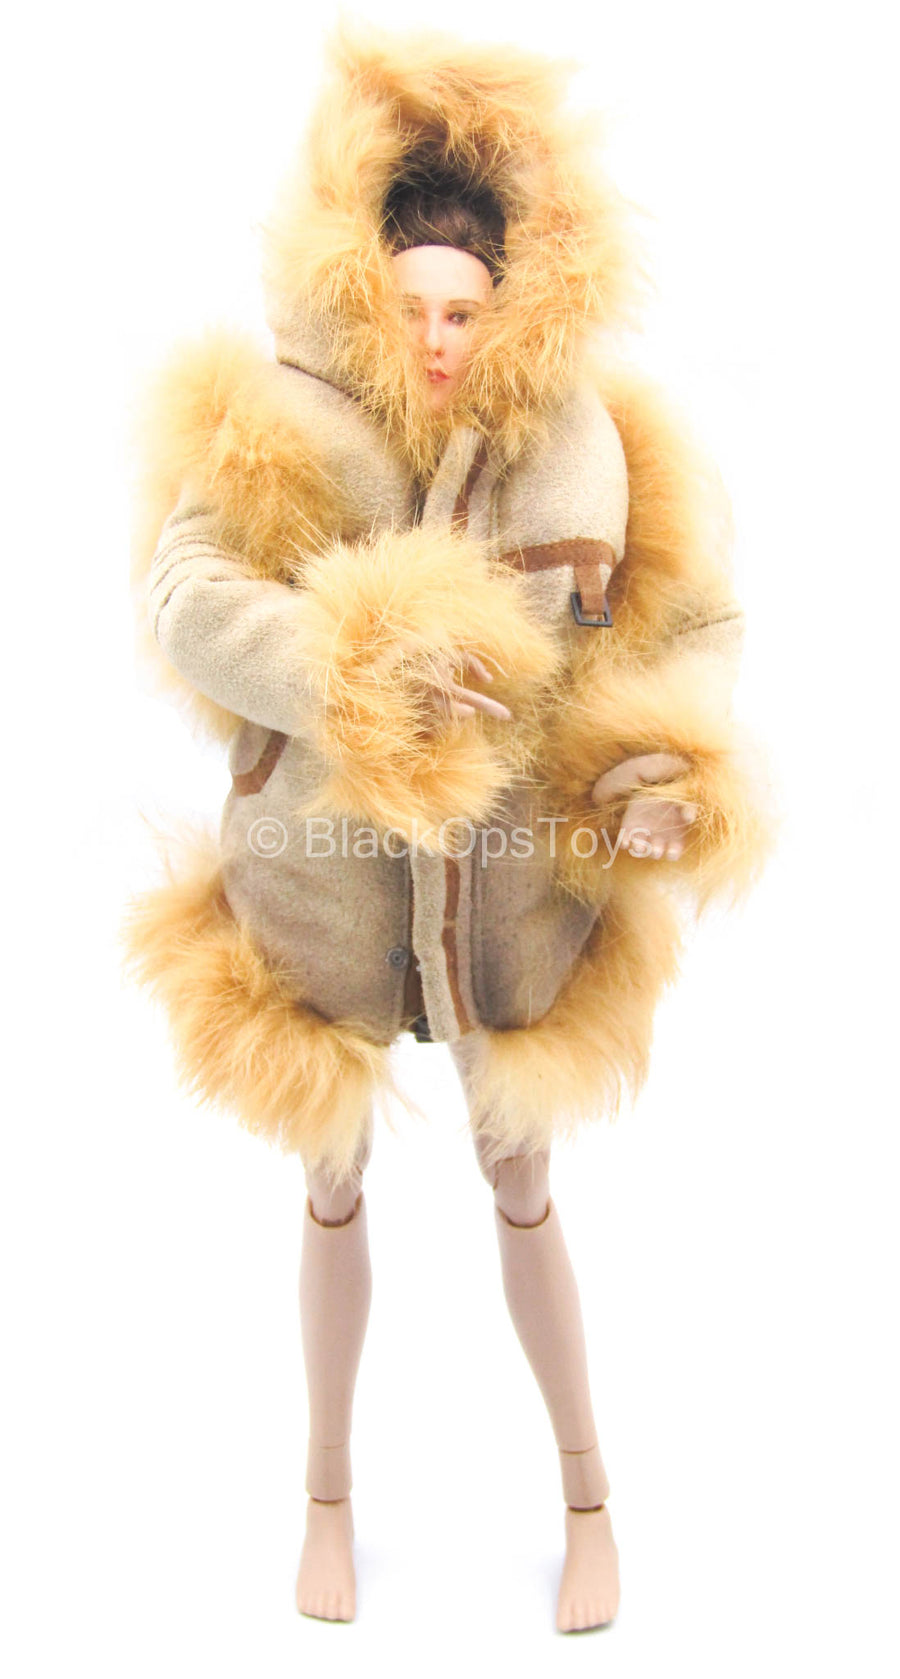 Apexplorers - Ice & Laser - Tan Fur-Like Winter Jacket